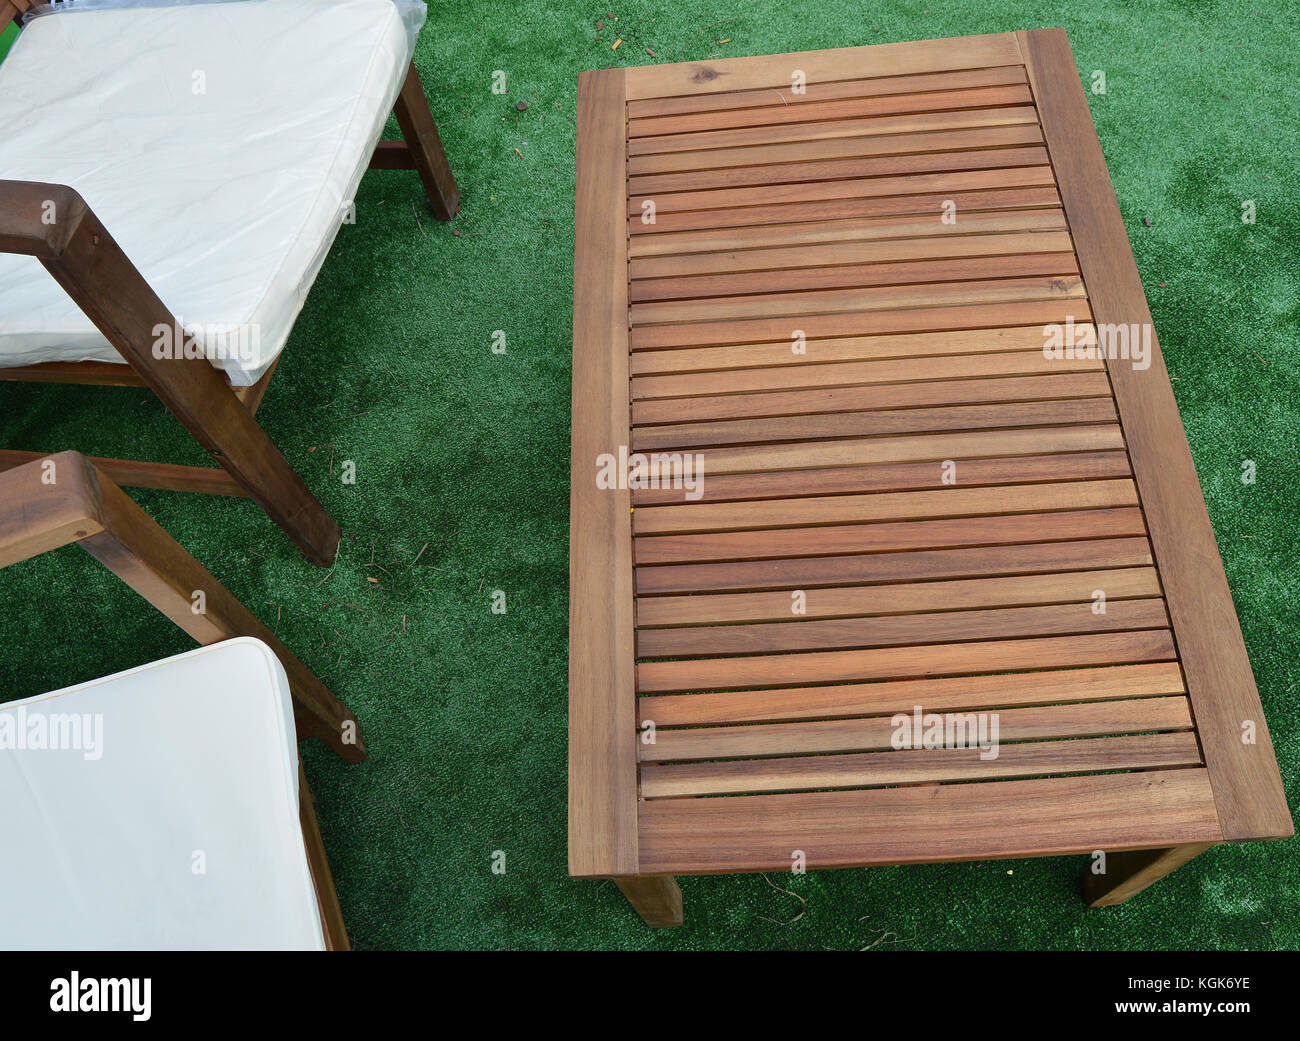 Design And Garden Furniture, Table Chairs Top View